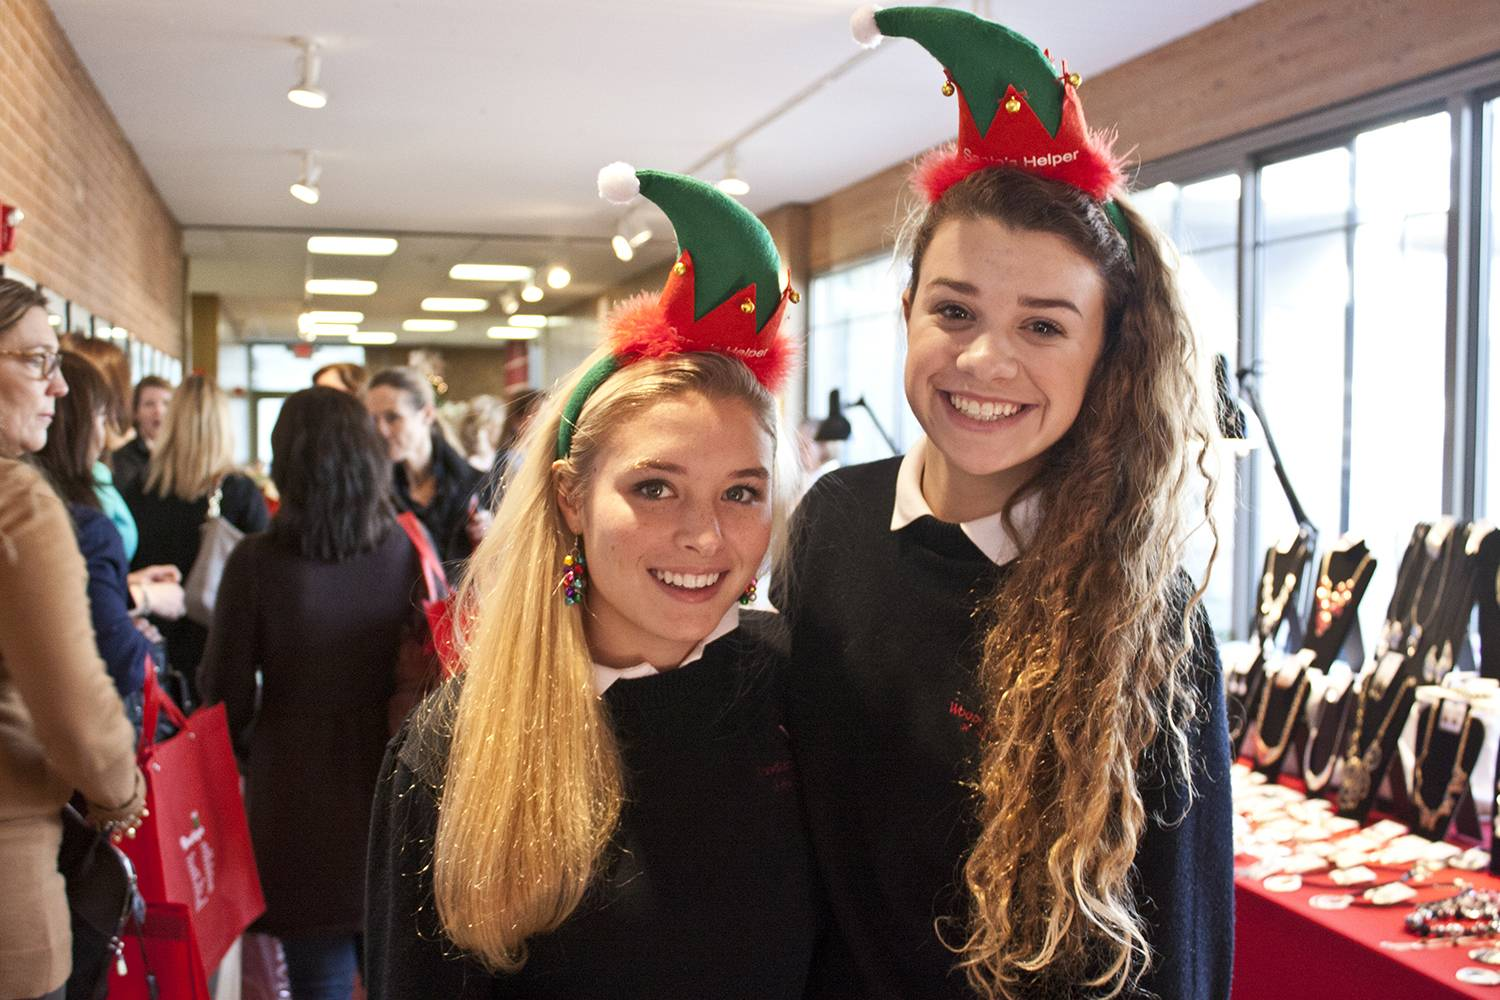 Student helpers Honore Olson of Evanston (left) and Ellyse Keller of Lake Bluff were on hand to assist those attending the boutique portion of last year's Winter Wonderwalk. Both girls are Woodlands Academy seniors this year.